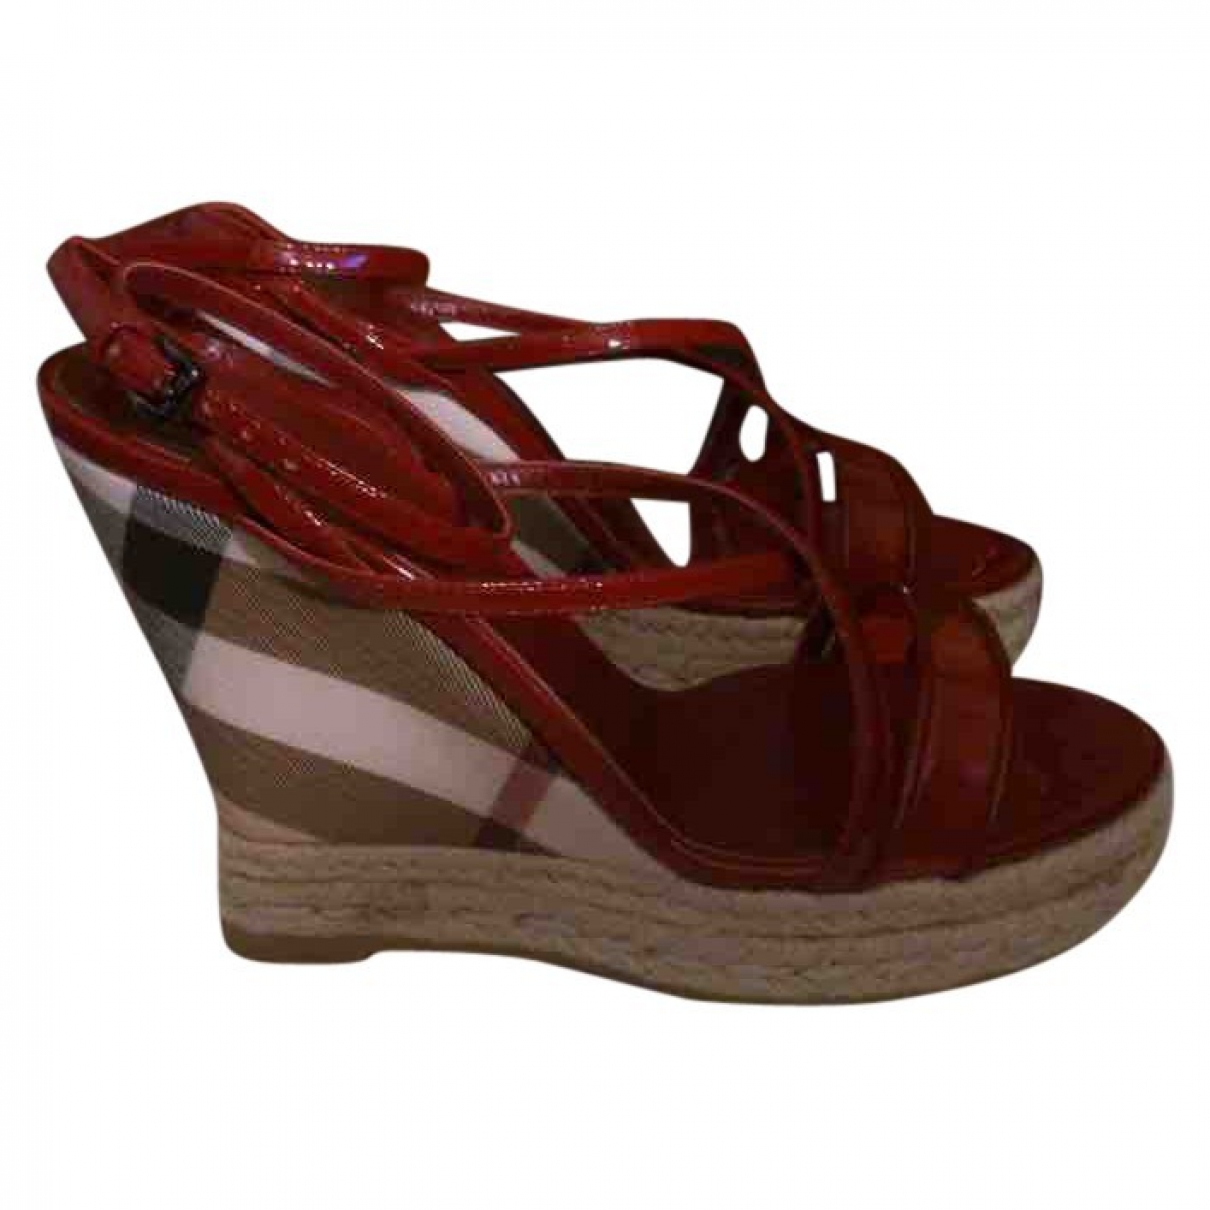 Burberry \N Red Patent leather Sandals for Women 36 EU